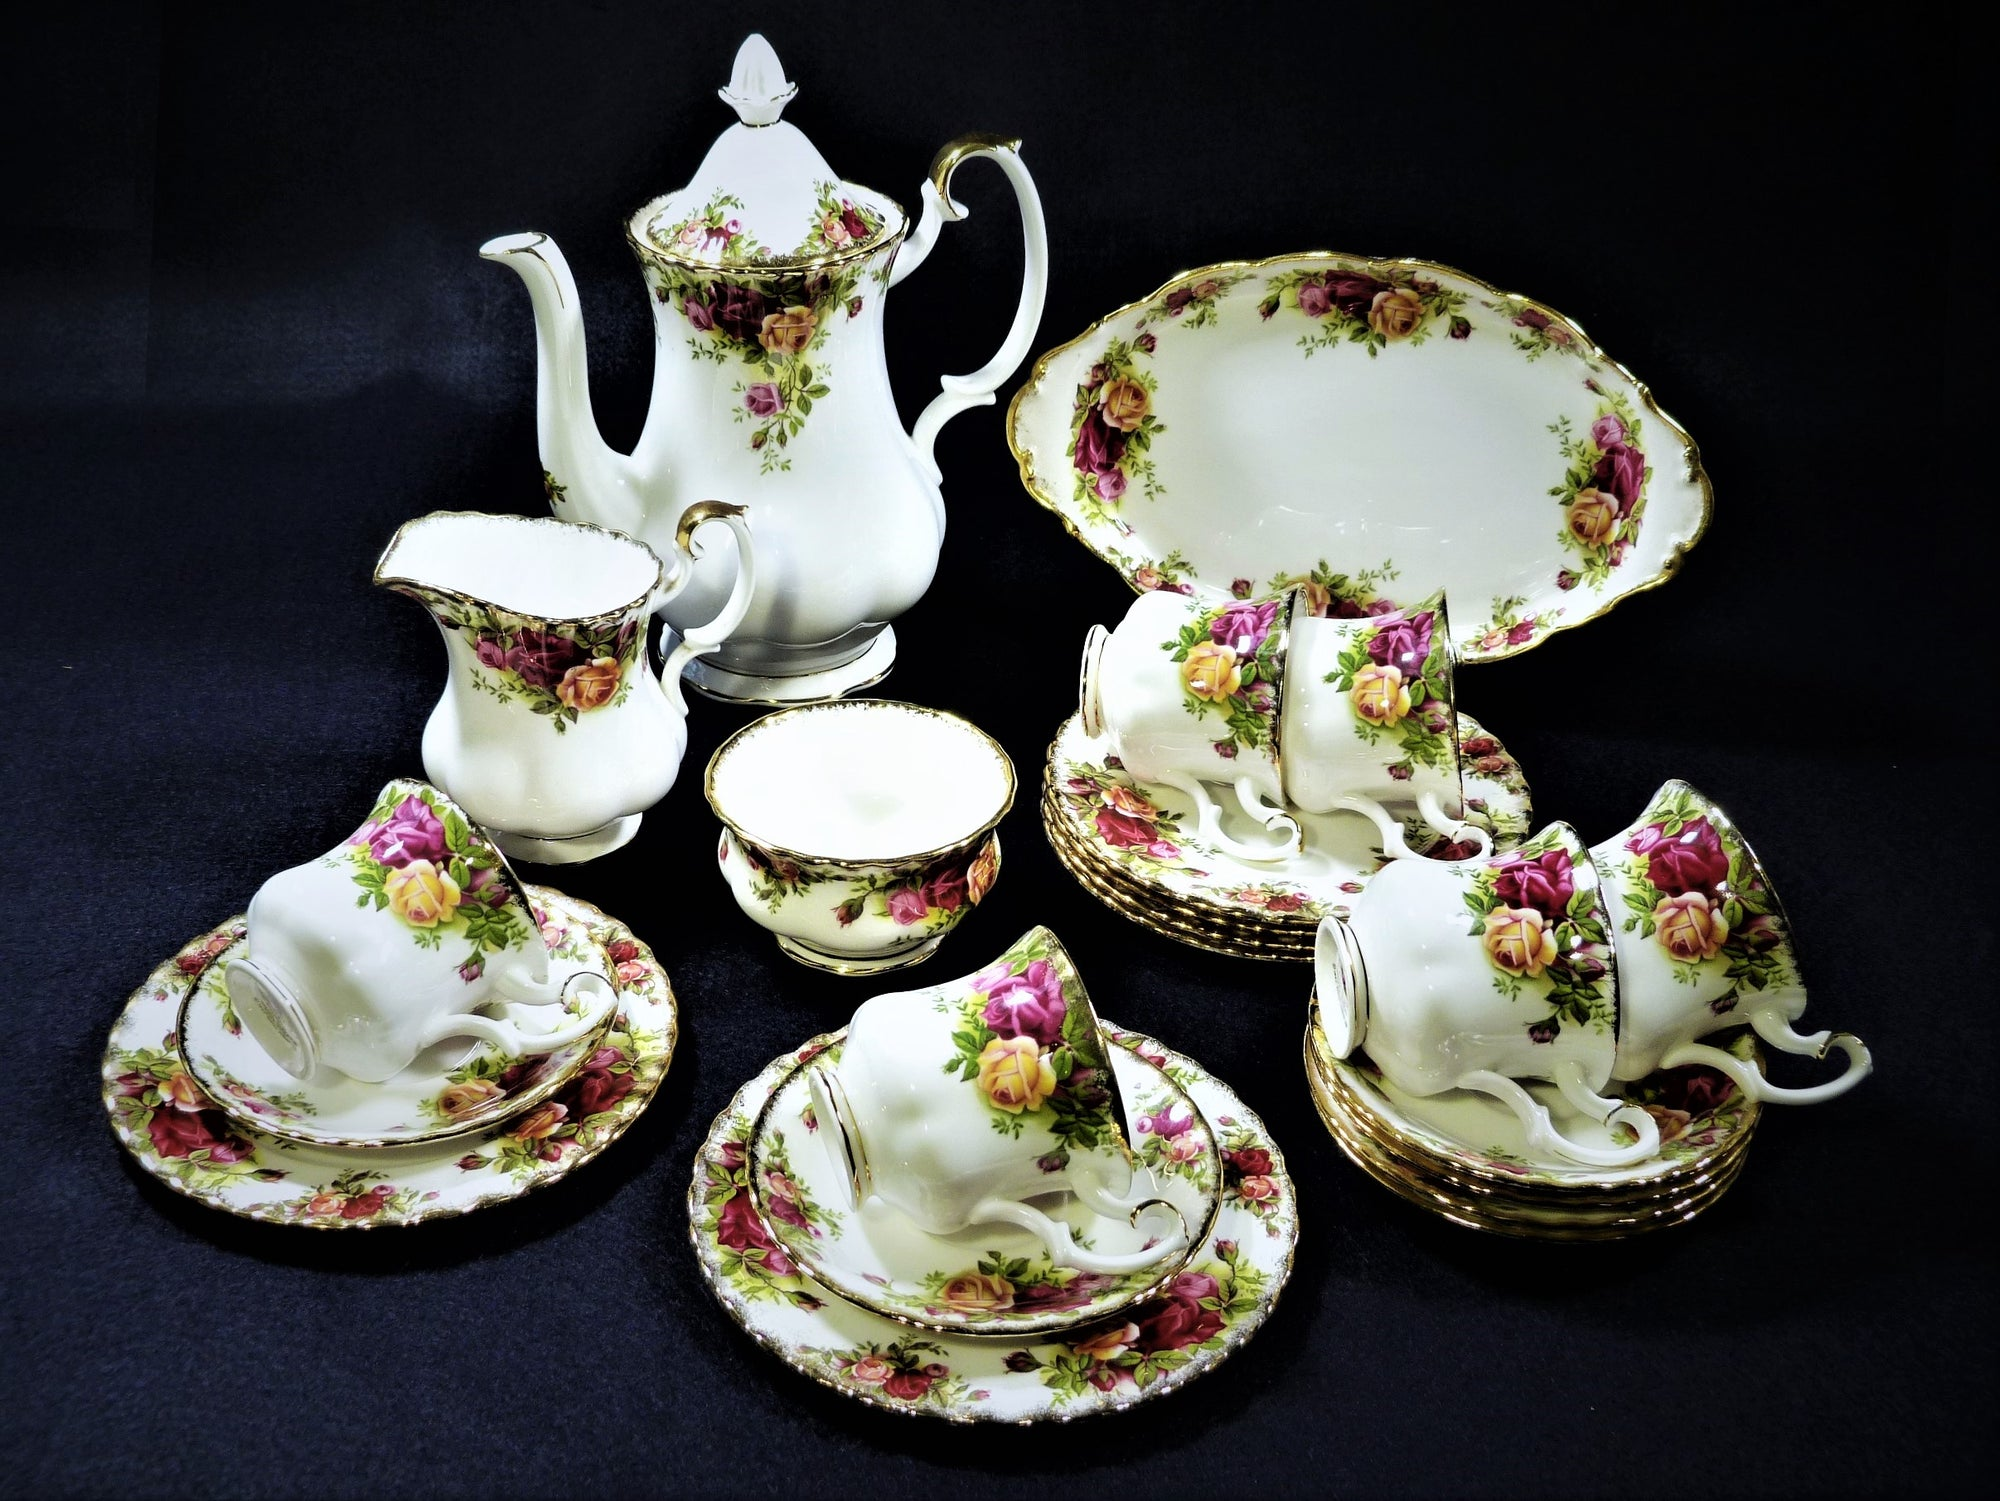 Vintage Royal Albert Old Country Roses Coffee Set, Made in England